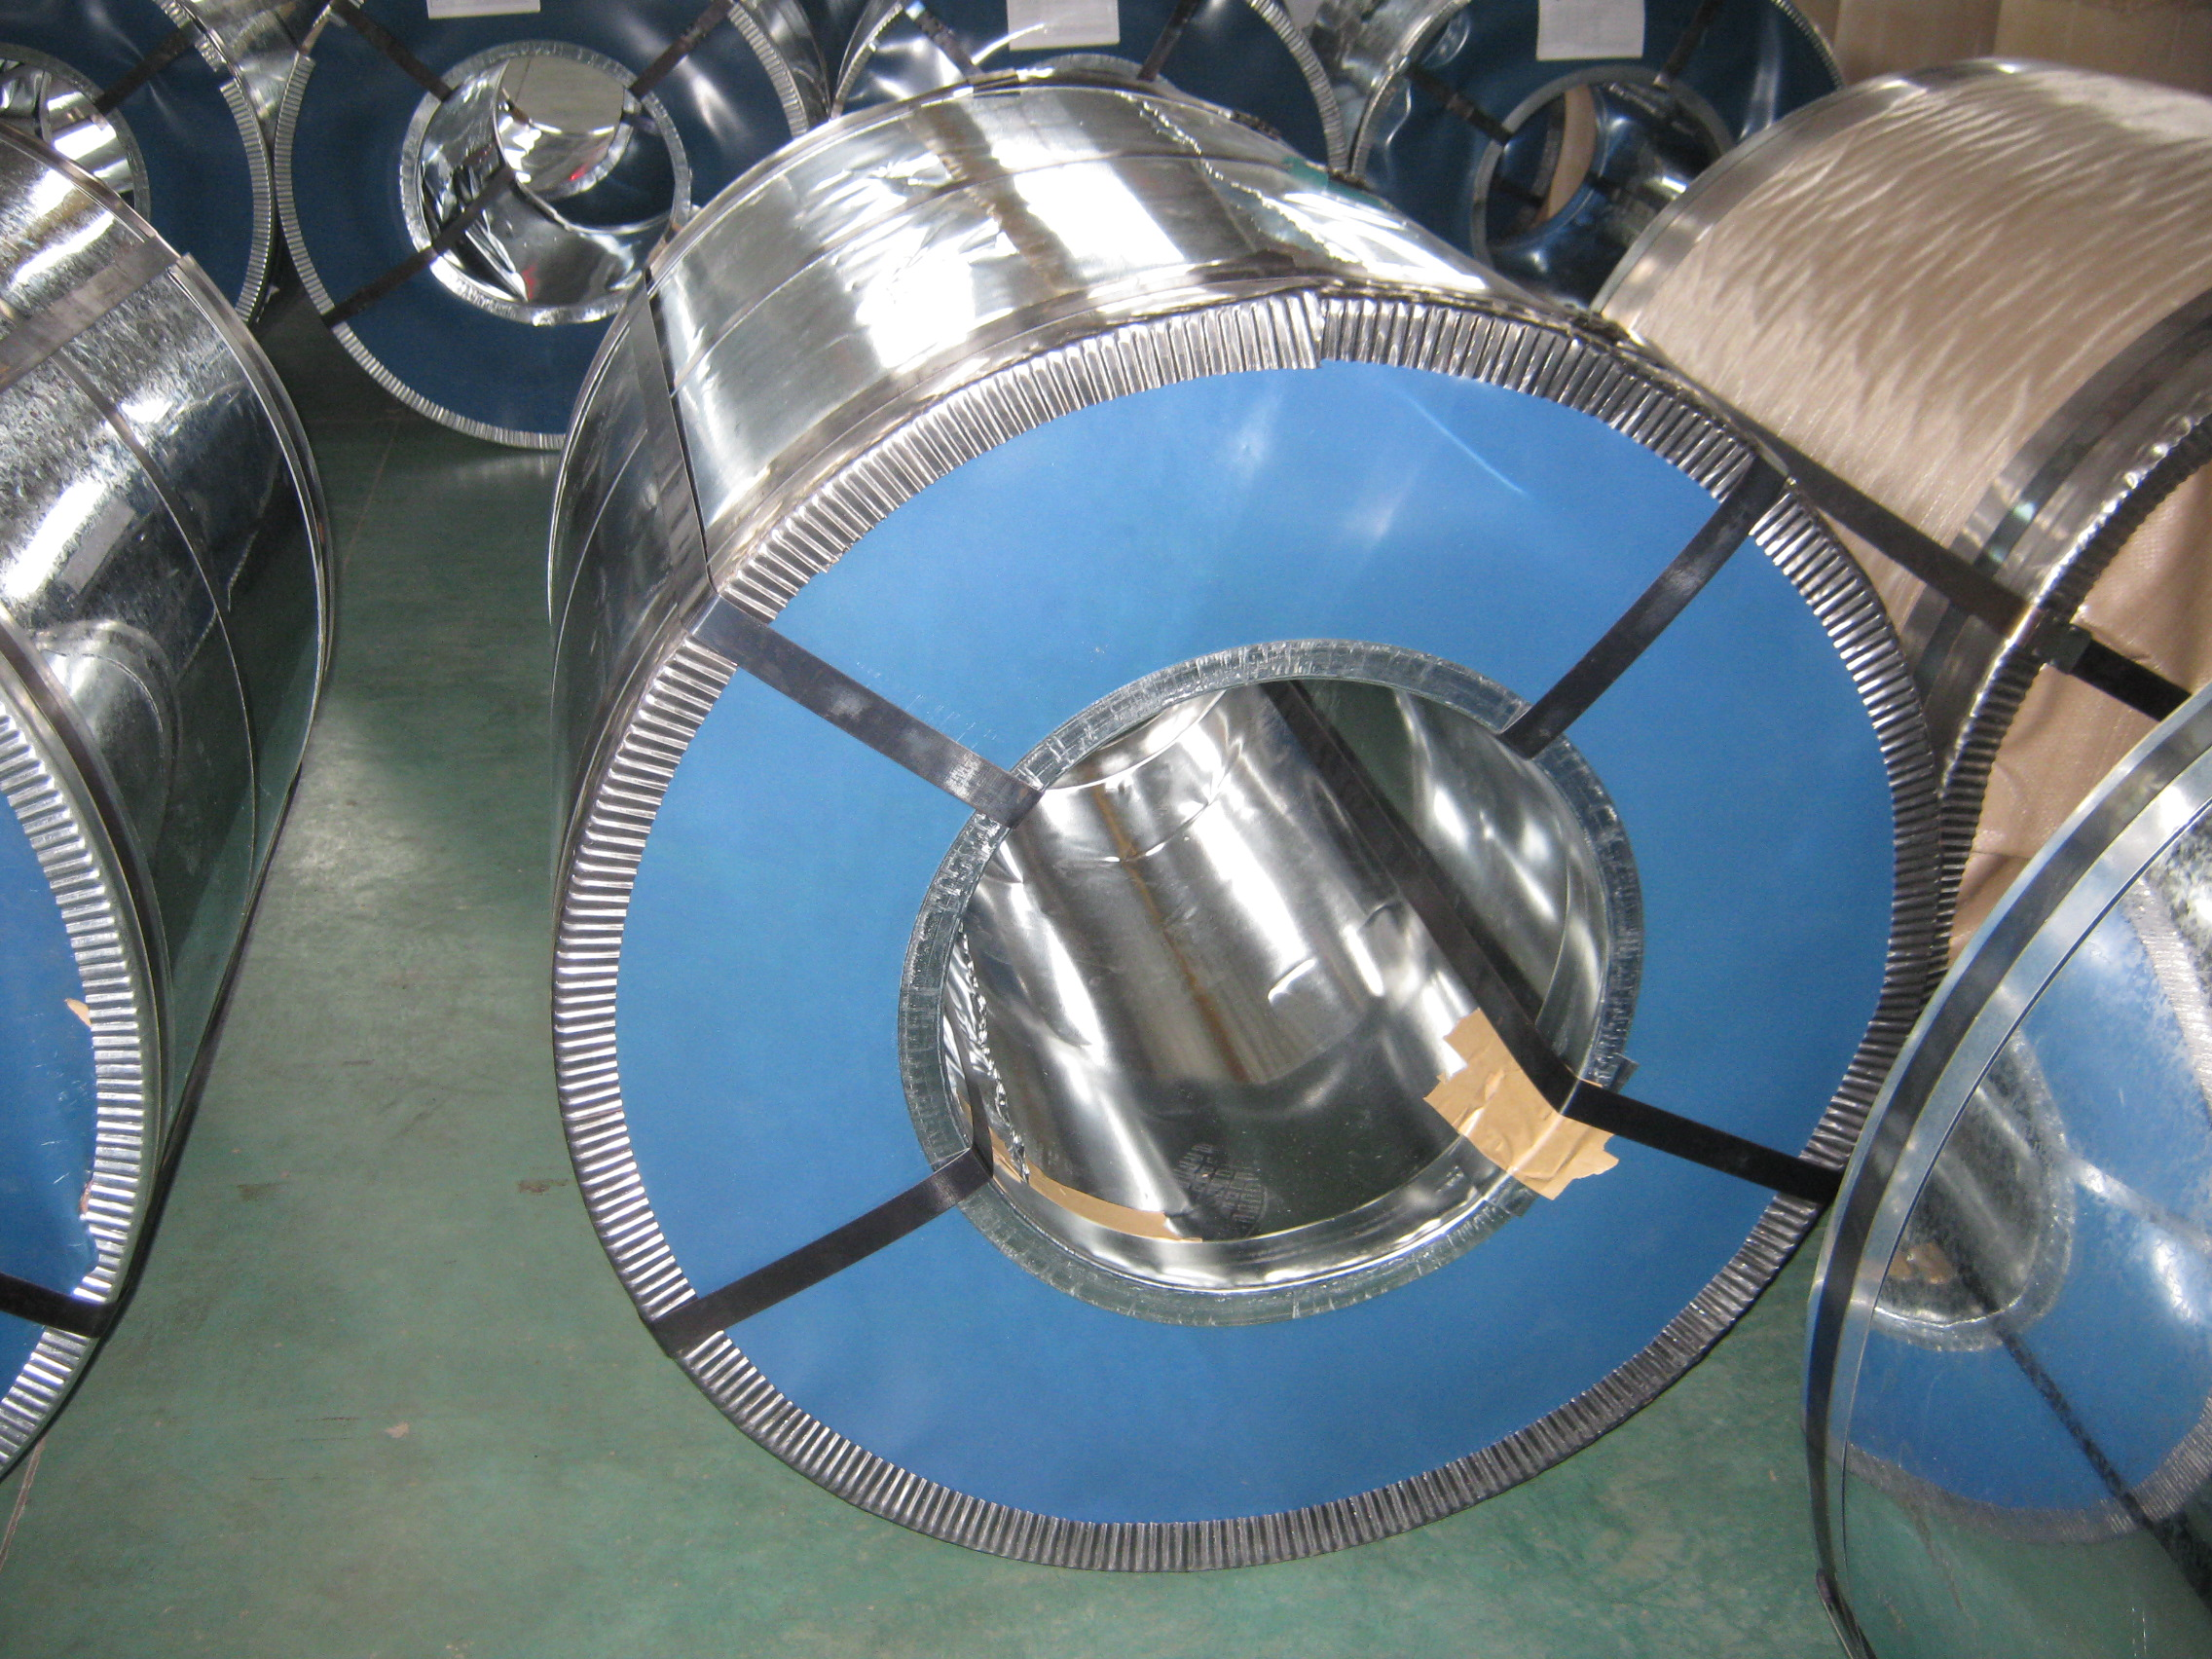 Hot dip galvanzied steel sheet in coils